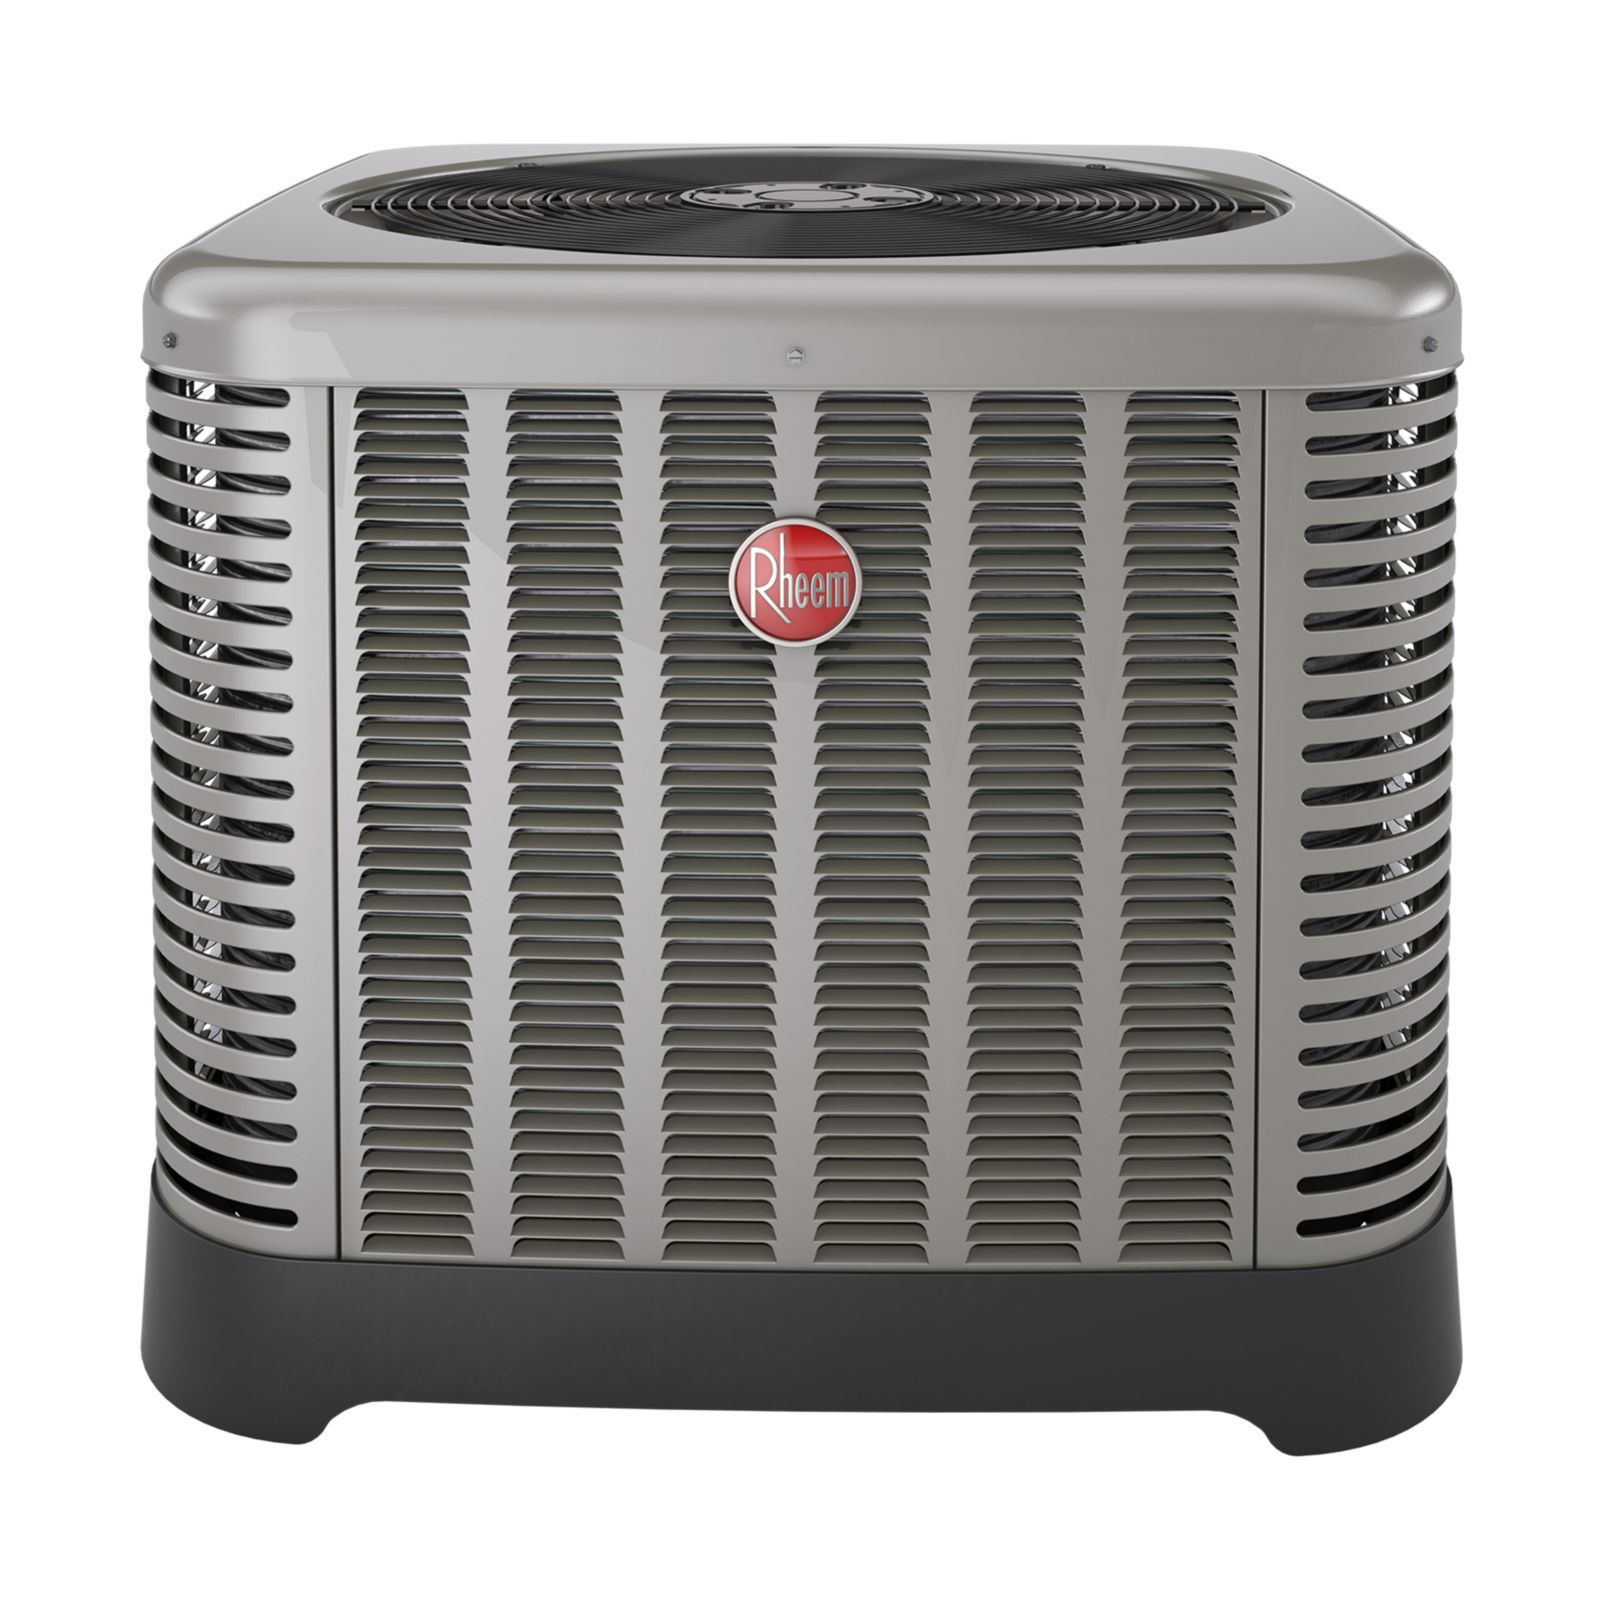 Rheem RA1442BJ1NA - Classica® Series 3 1/2 Ton 14 SEER Single Stage Air Conditioner, 208/230/1/60